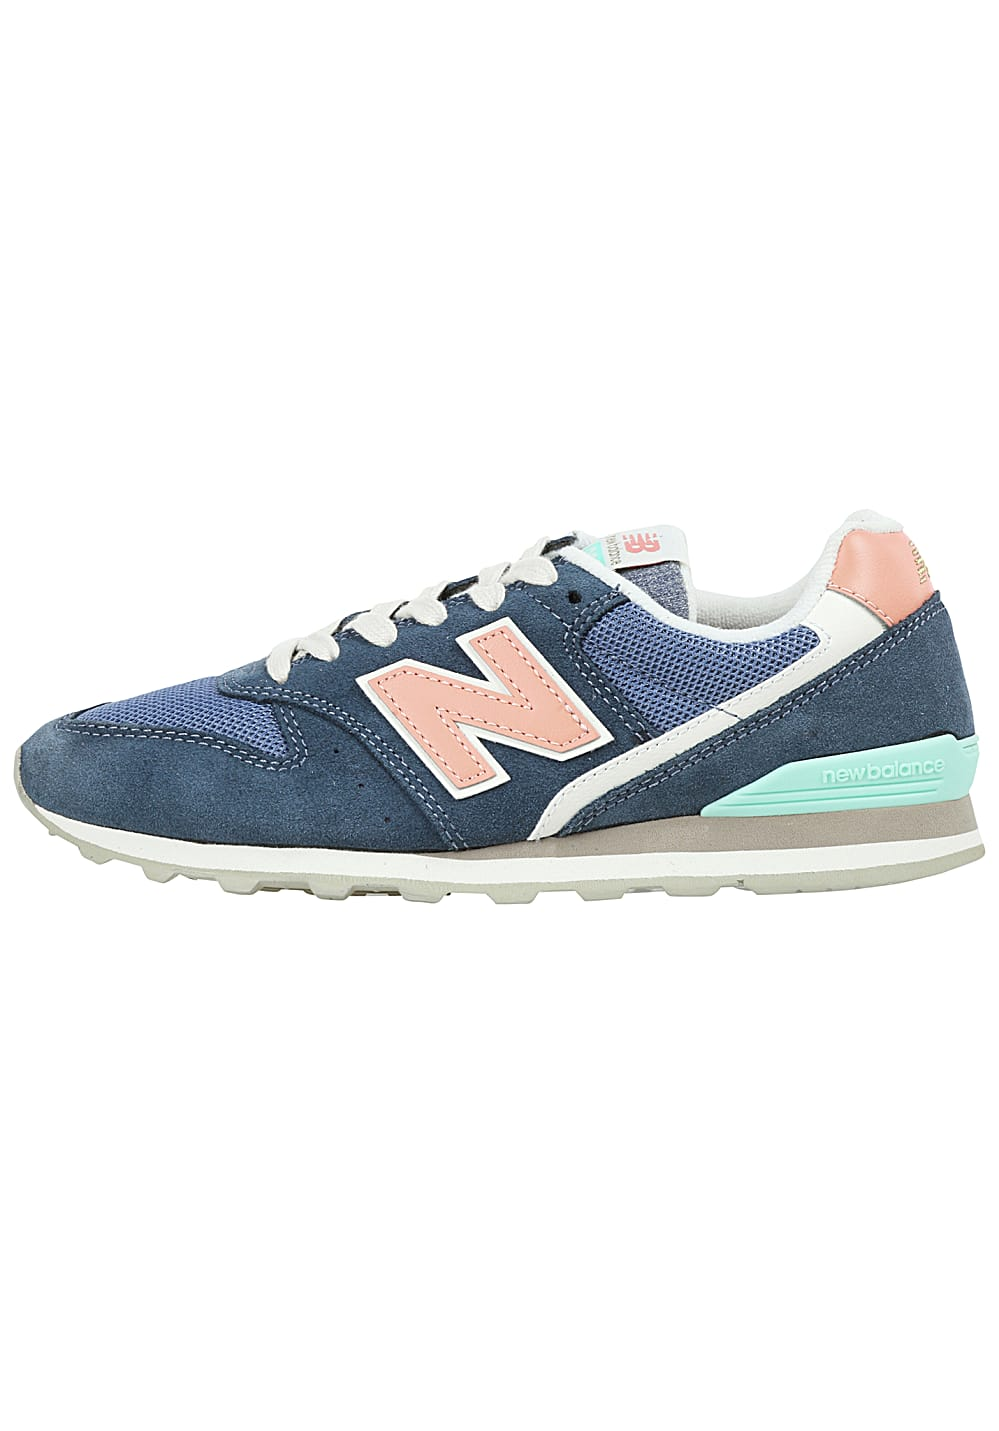 NEW BALANCE WL996 B - Sneaker für Damen - Blau - Planet Sports